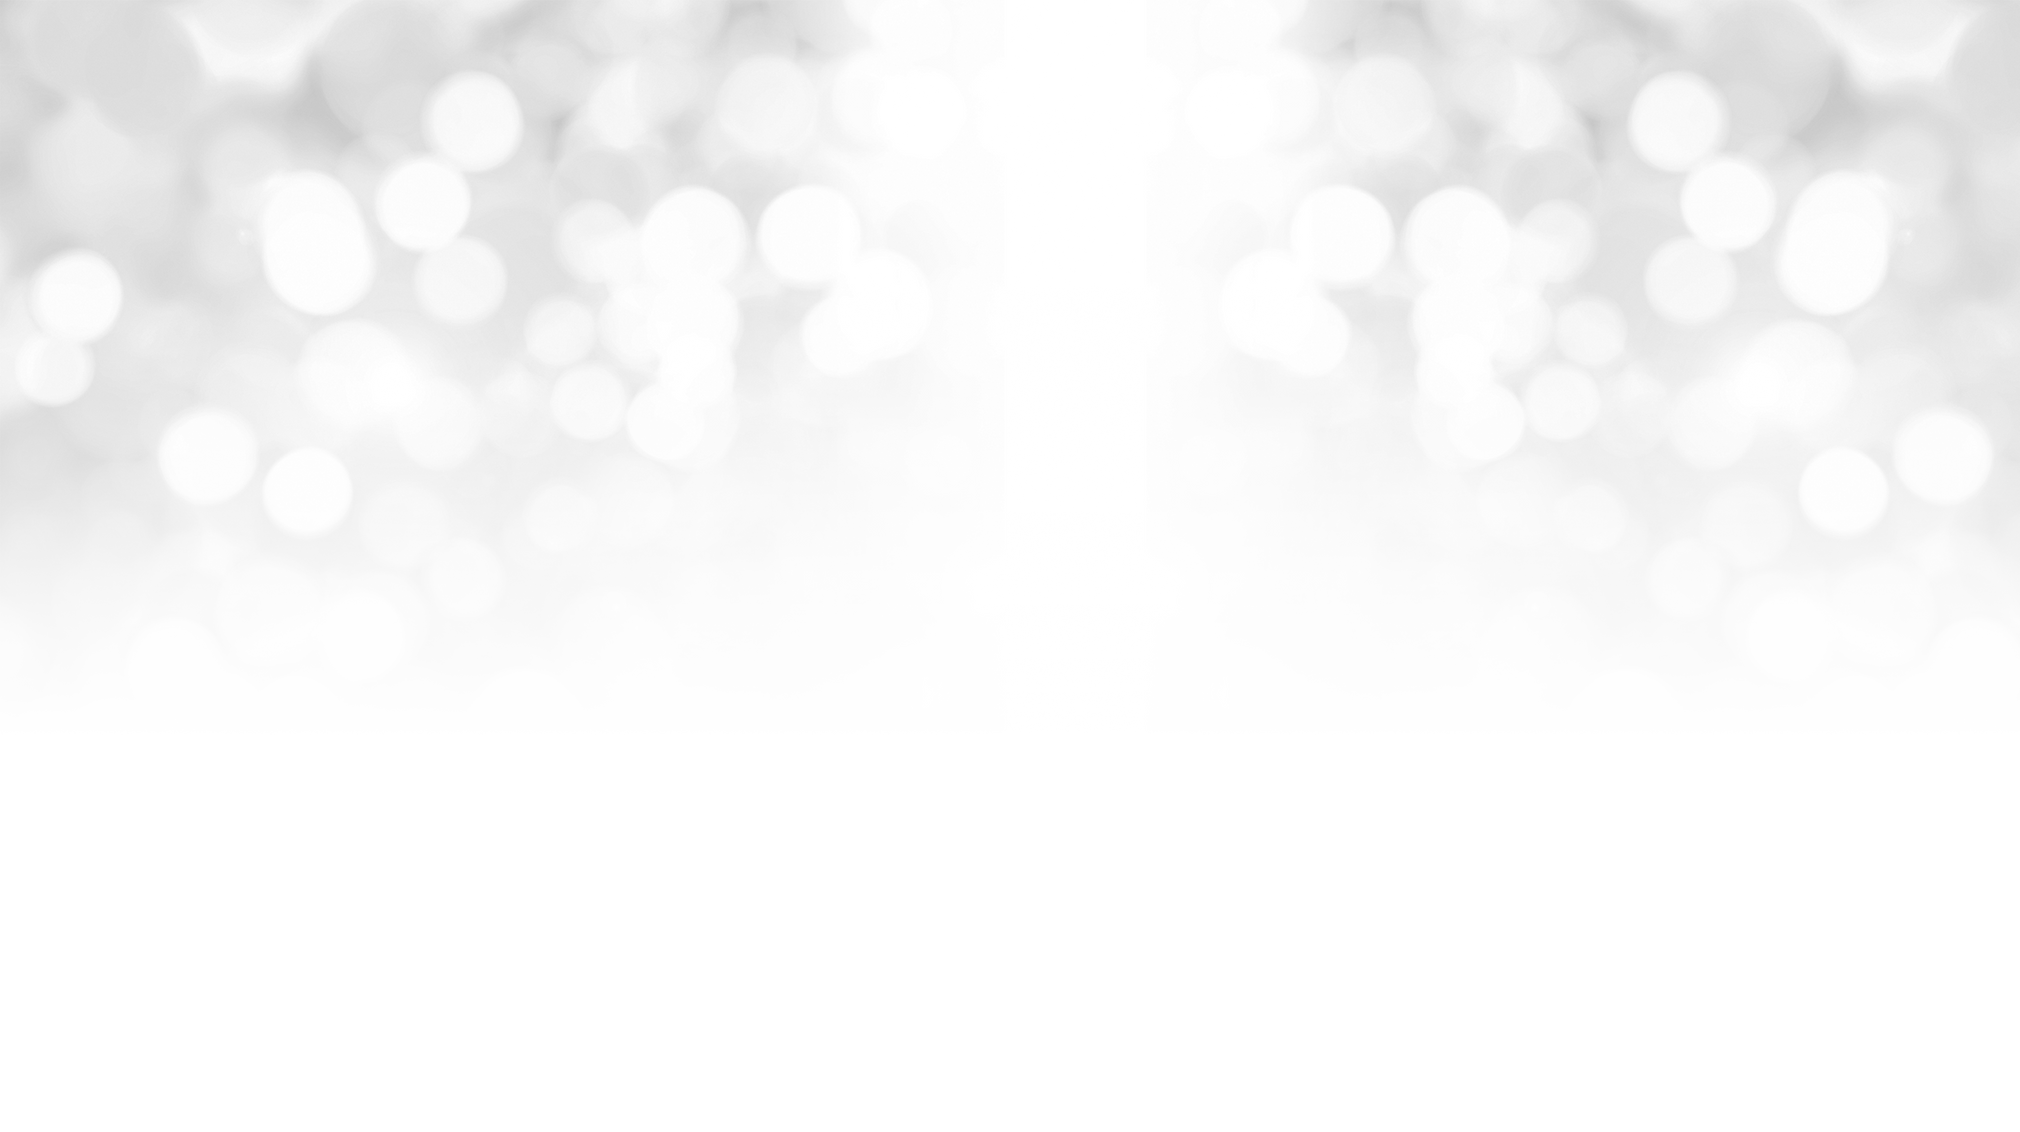 EPS-T21-Background 2.png